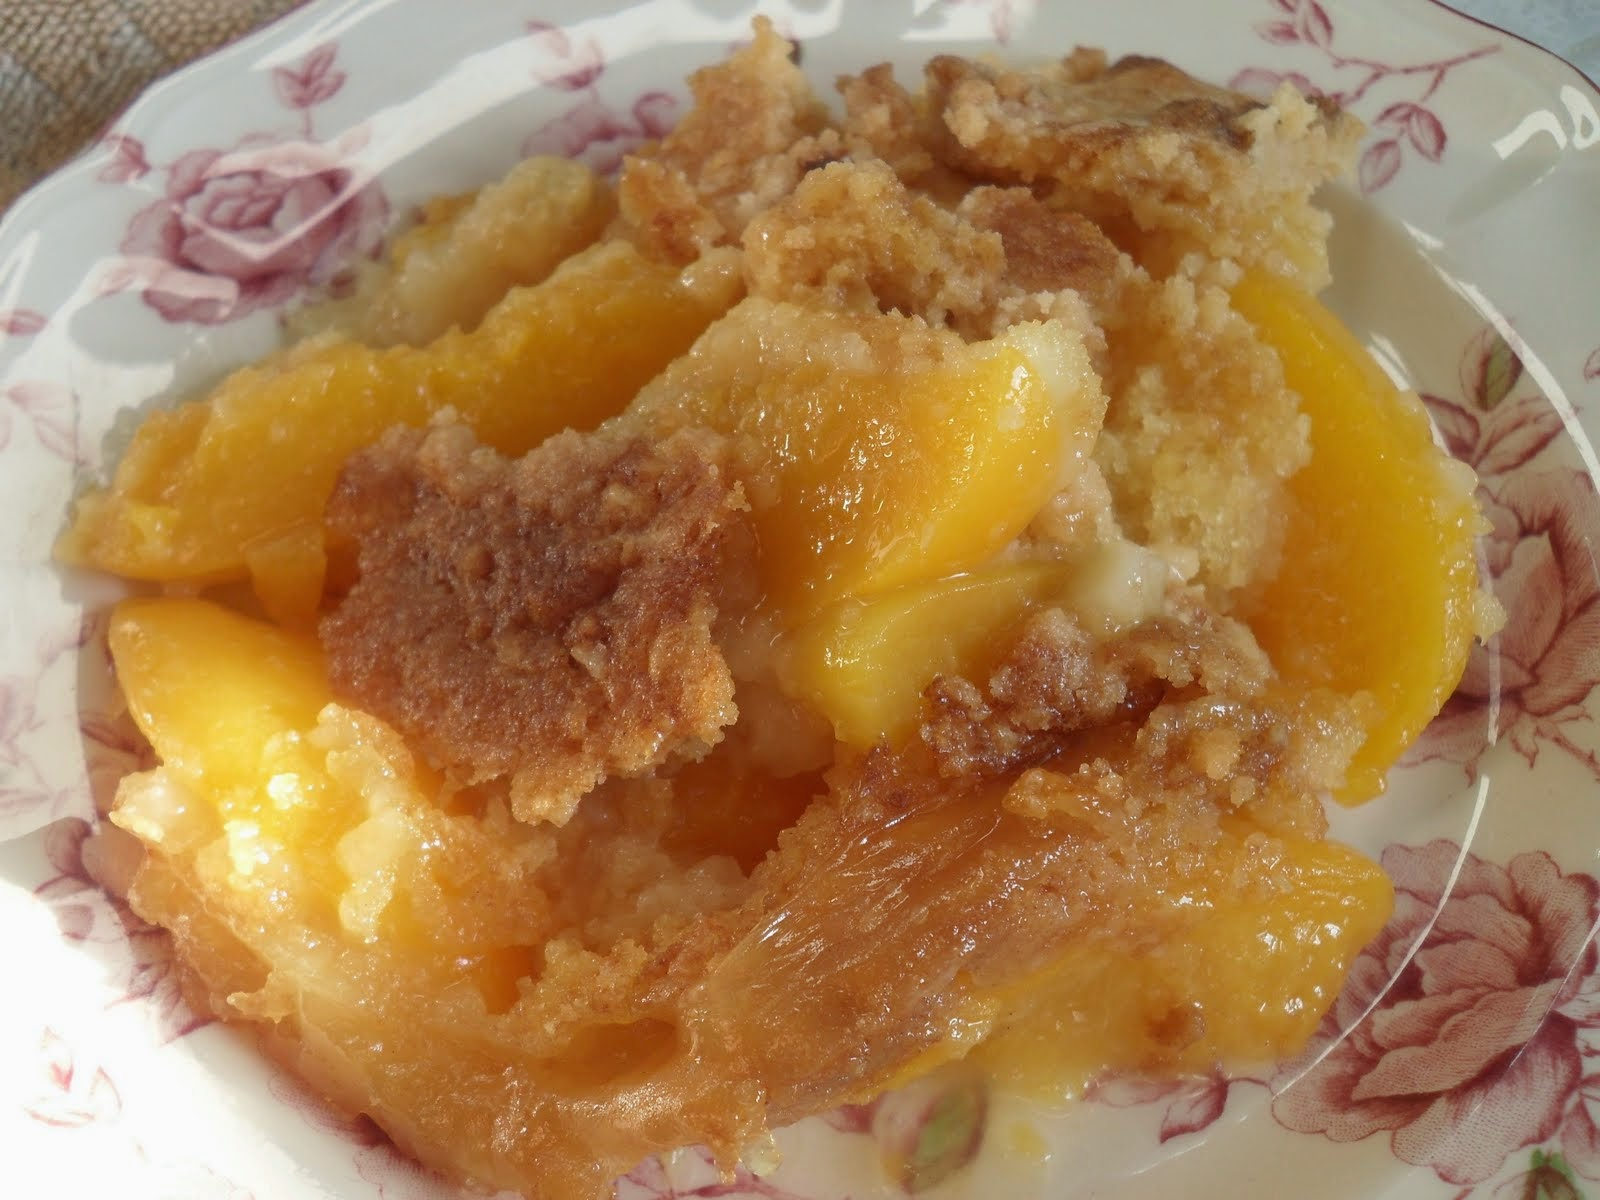 http://www.infobarrel.com/Easy_quick_deliciuos_anytime_peach_cobbler